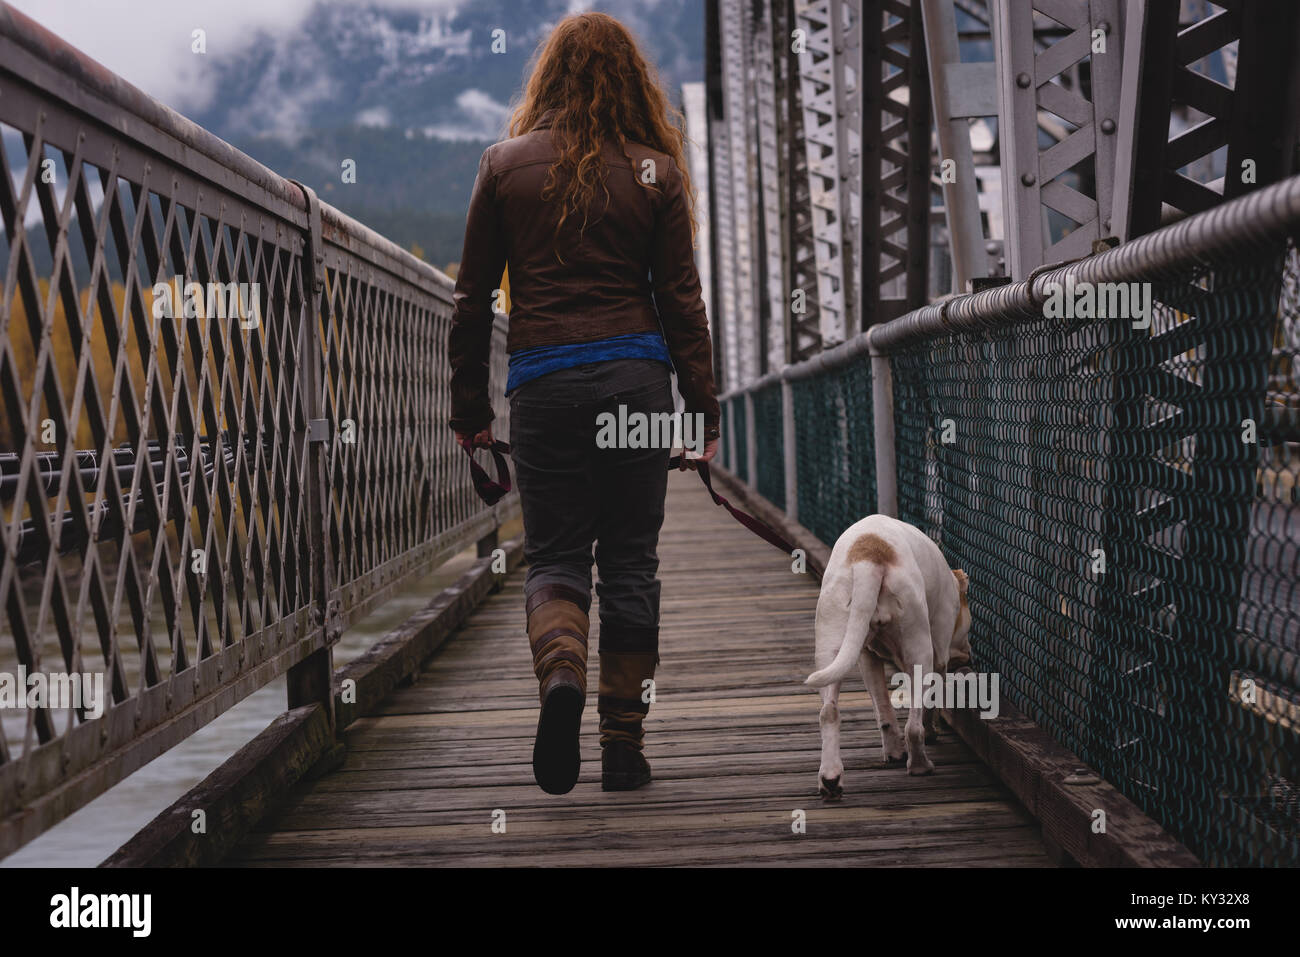 Woman walking on the bridge with her pet dog - Stock Image